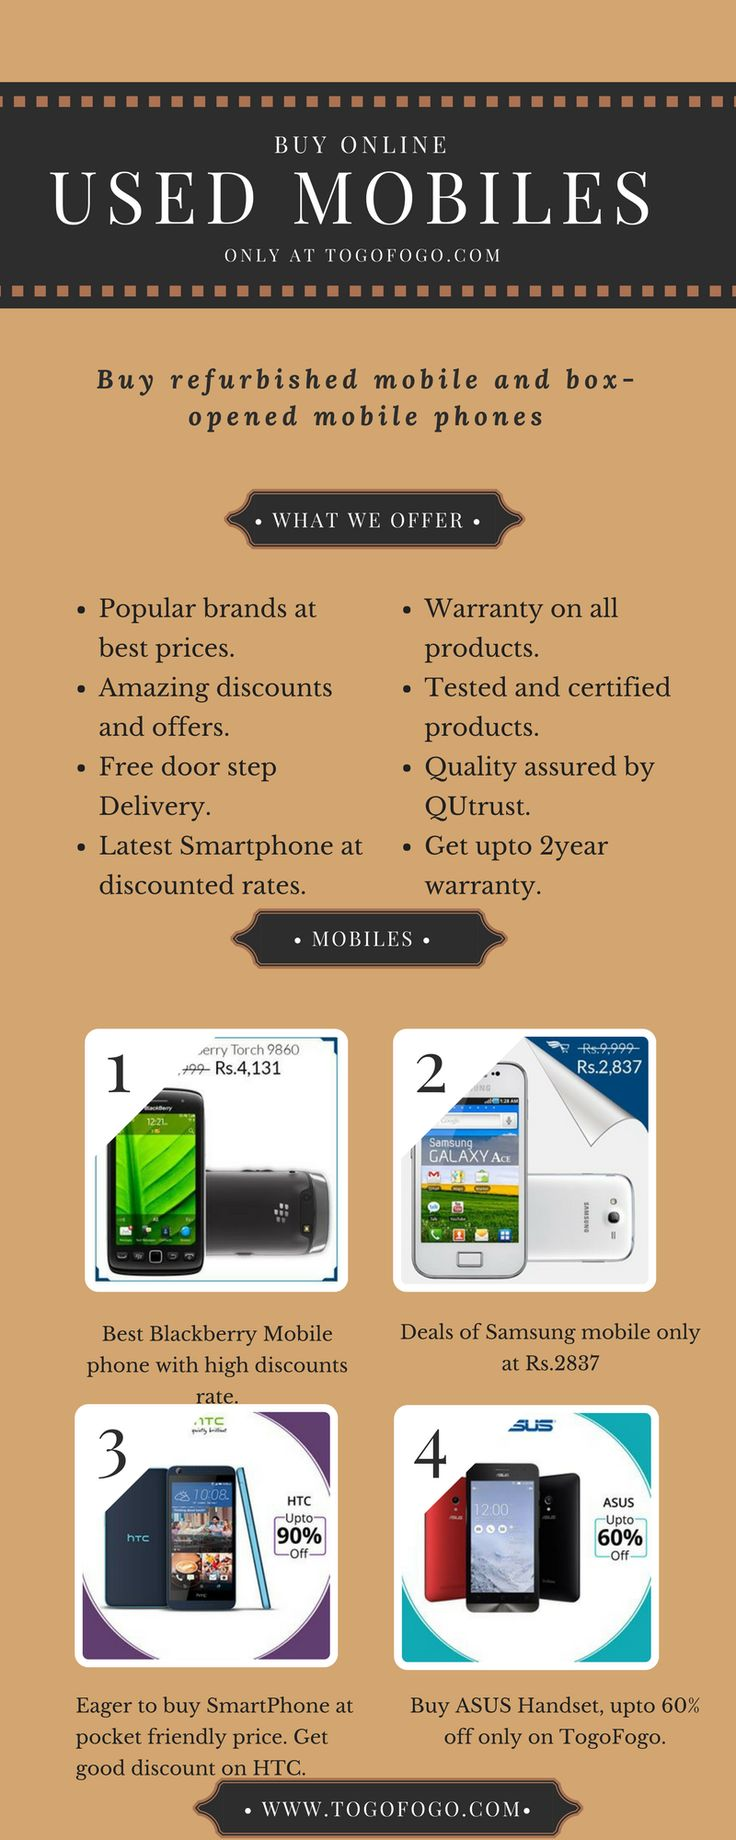 Buy Used Mobile Phones: Buy used mobile, refurbished, box opened and certified pre owned mobile phones, tablets & laptops online in India with huge discounts, 1 year warranty, free shipping, and COD. More info: http://bit.ly/2oxwDZu